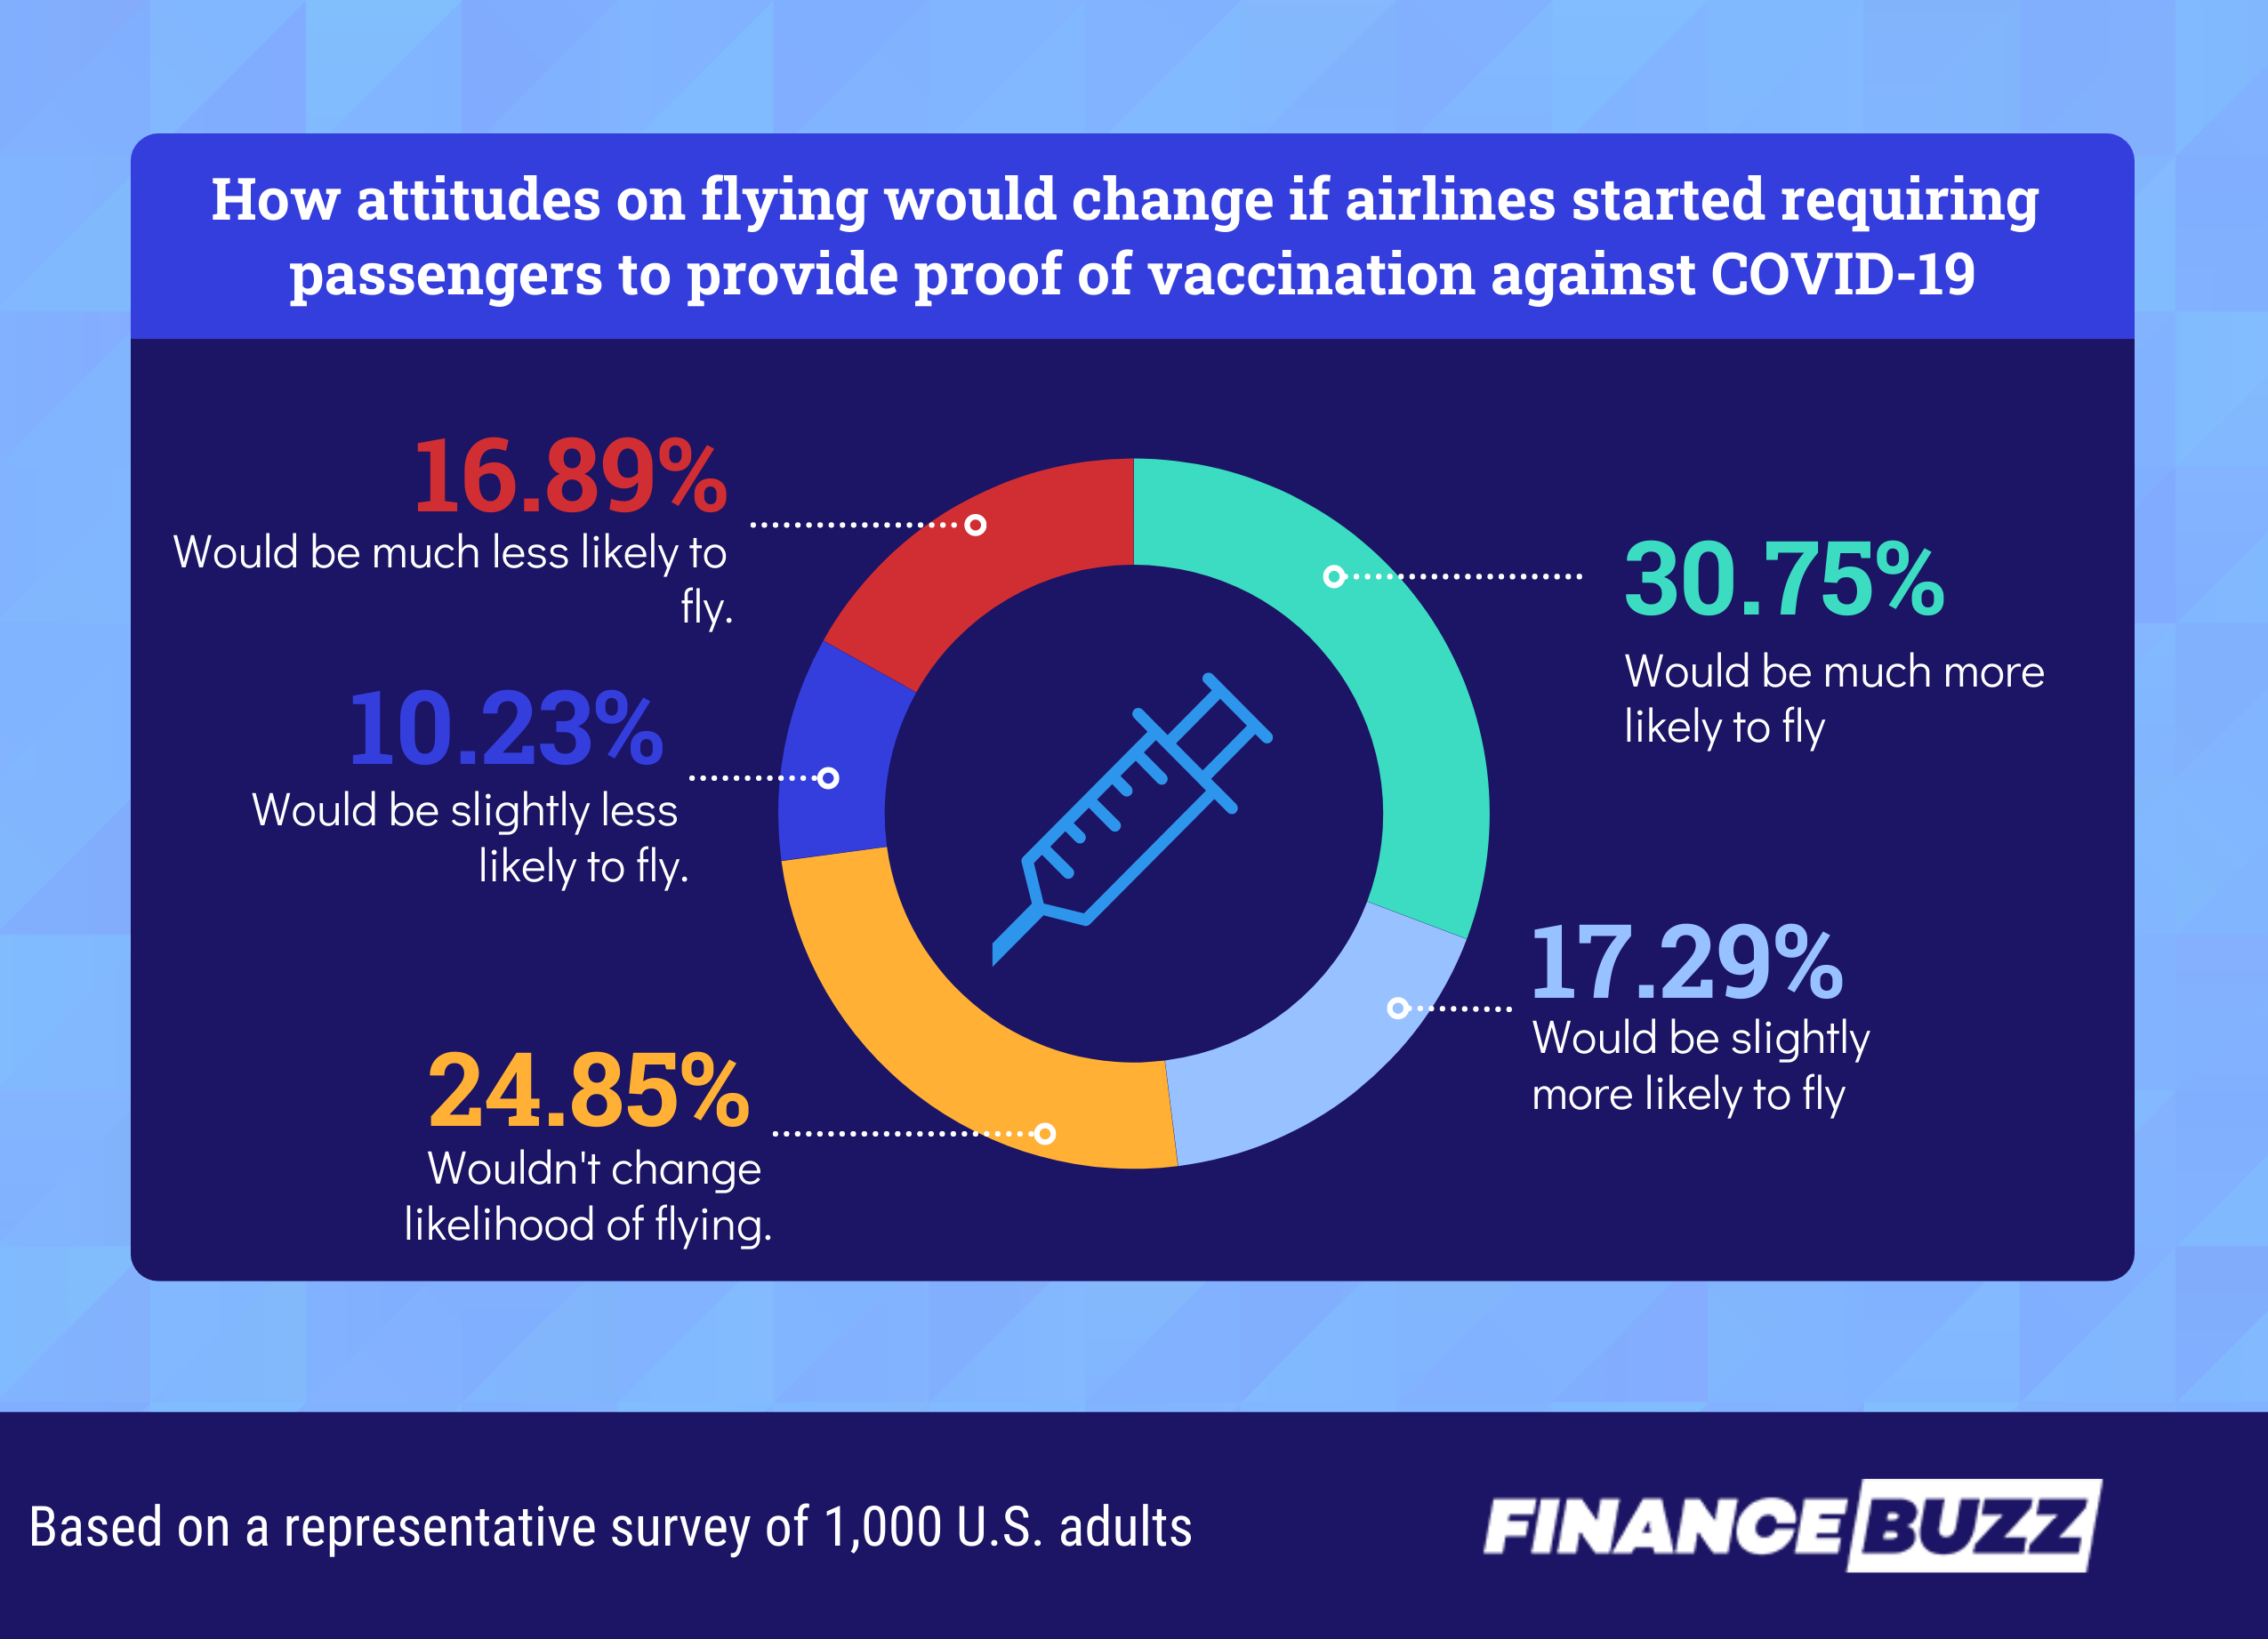 Pie chart showing how travel sentiment would change if airline started requiring proof of vaccination